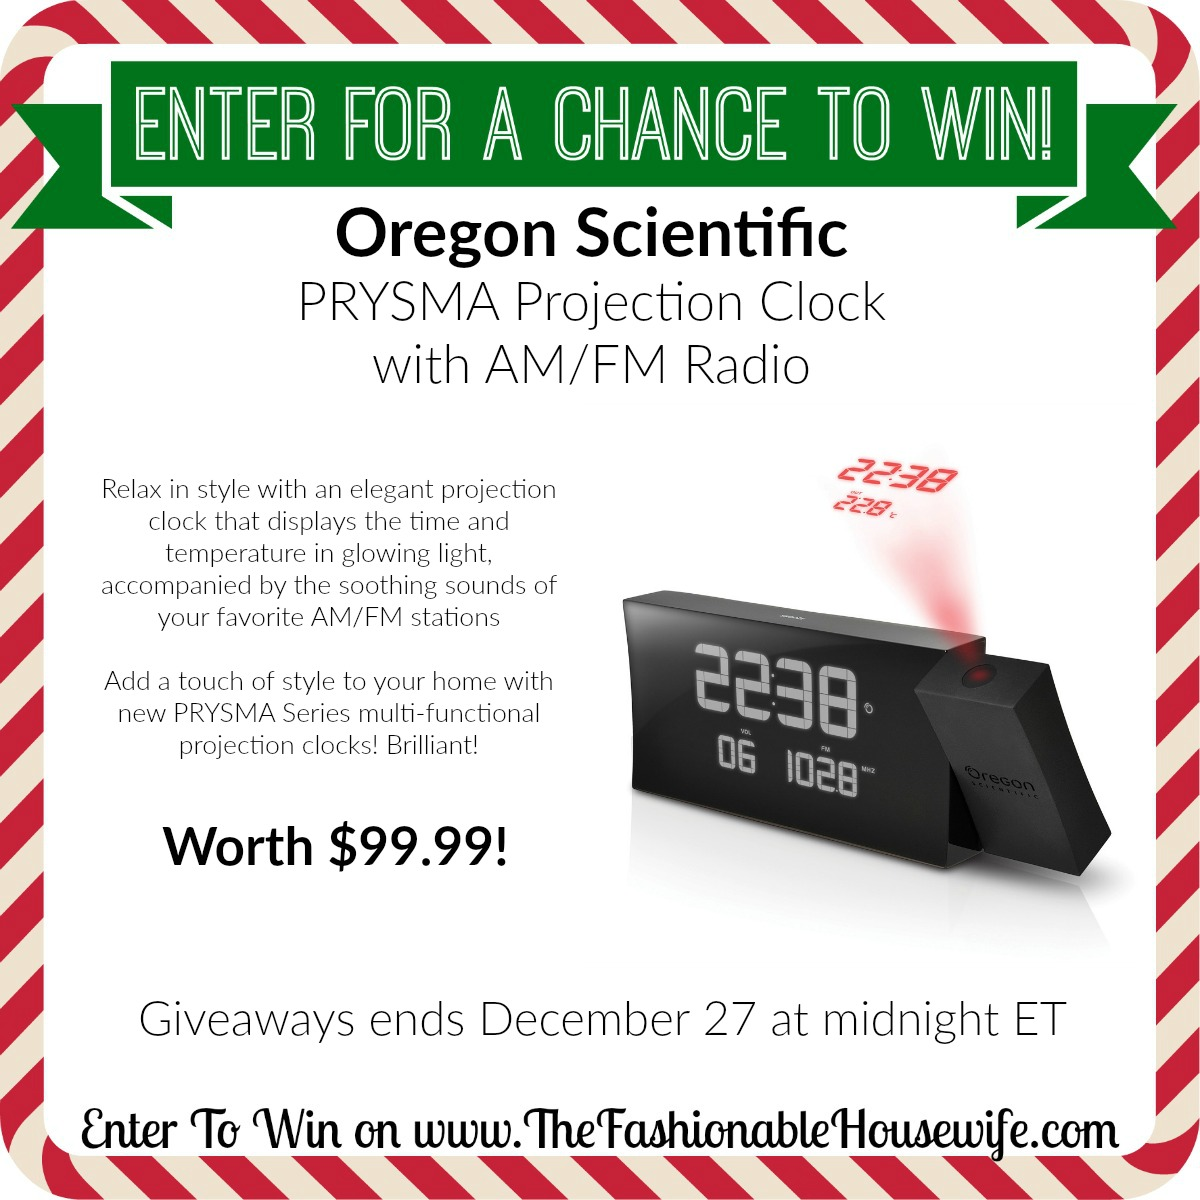 Enter To Win Oregon Scientific Atomic Projection Clock